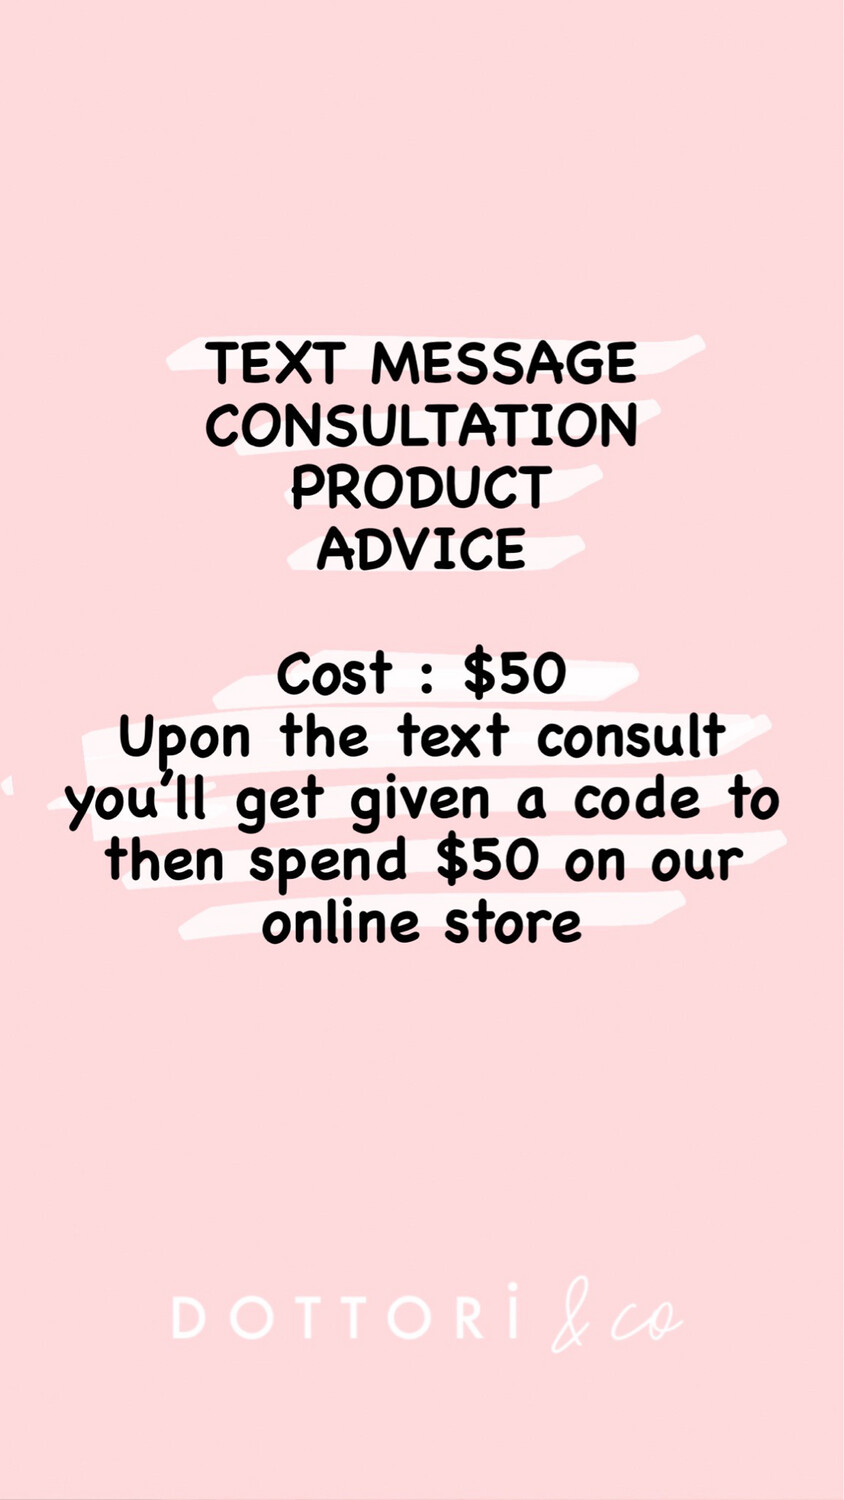 Product Consult Via TEXT